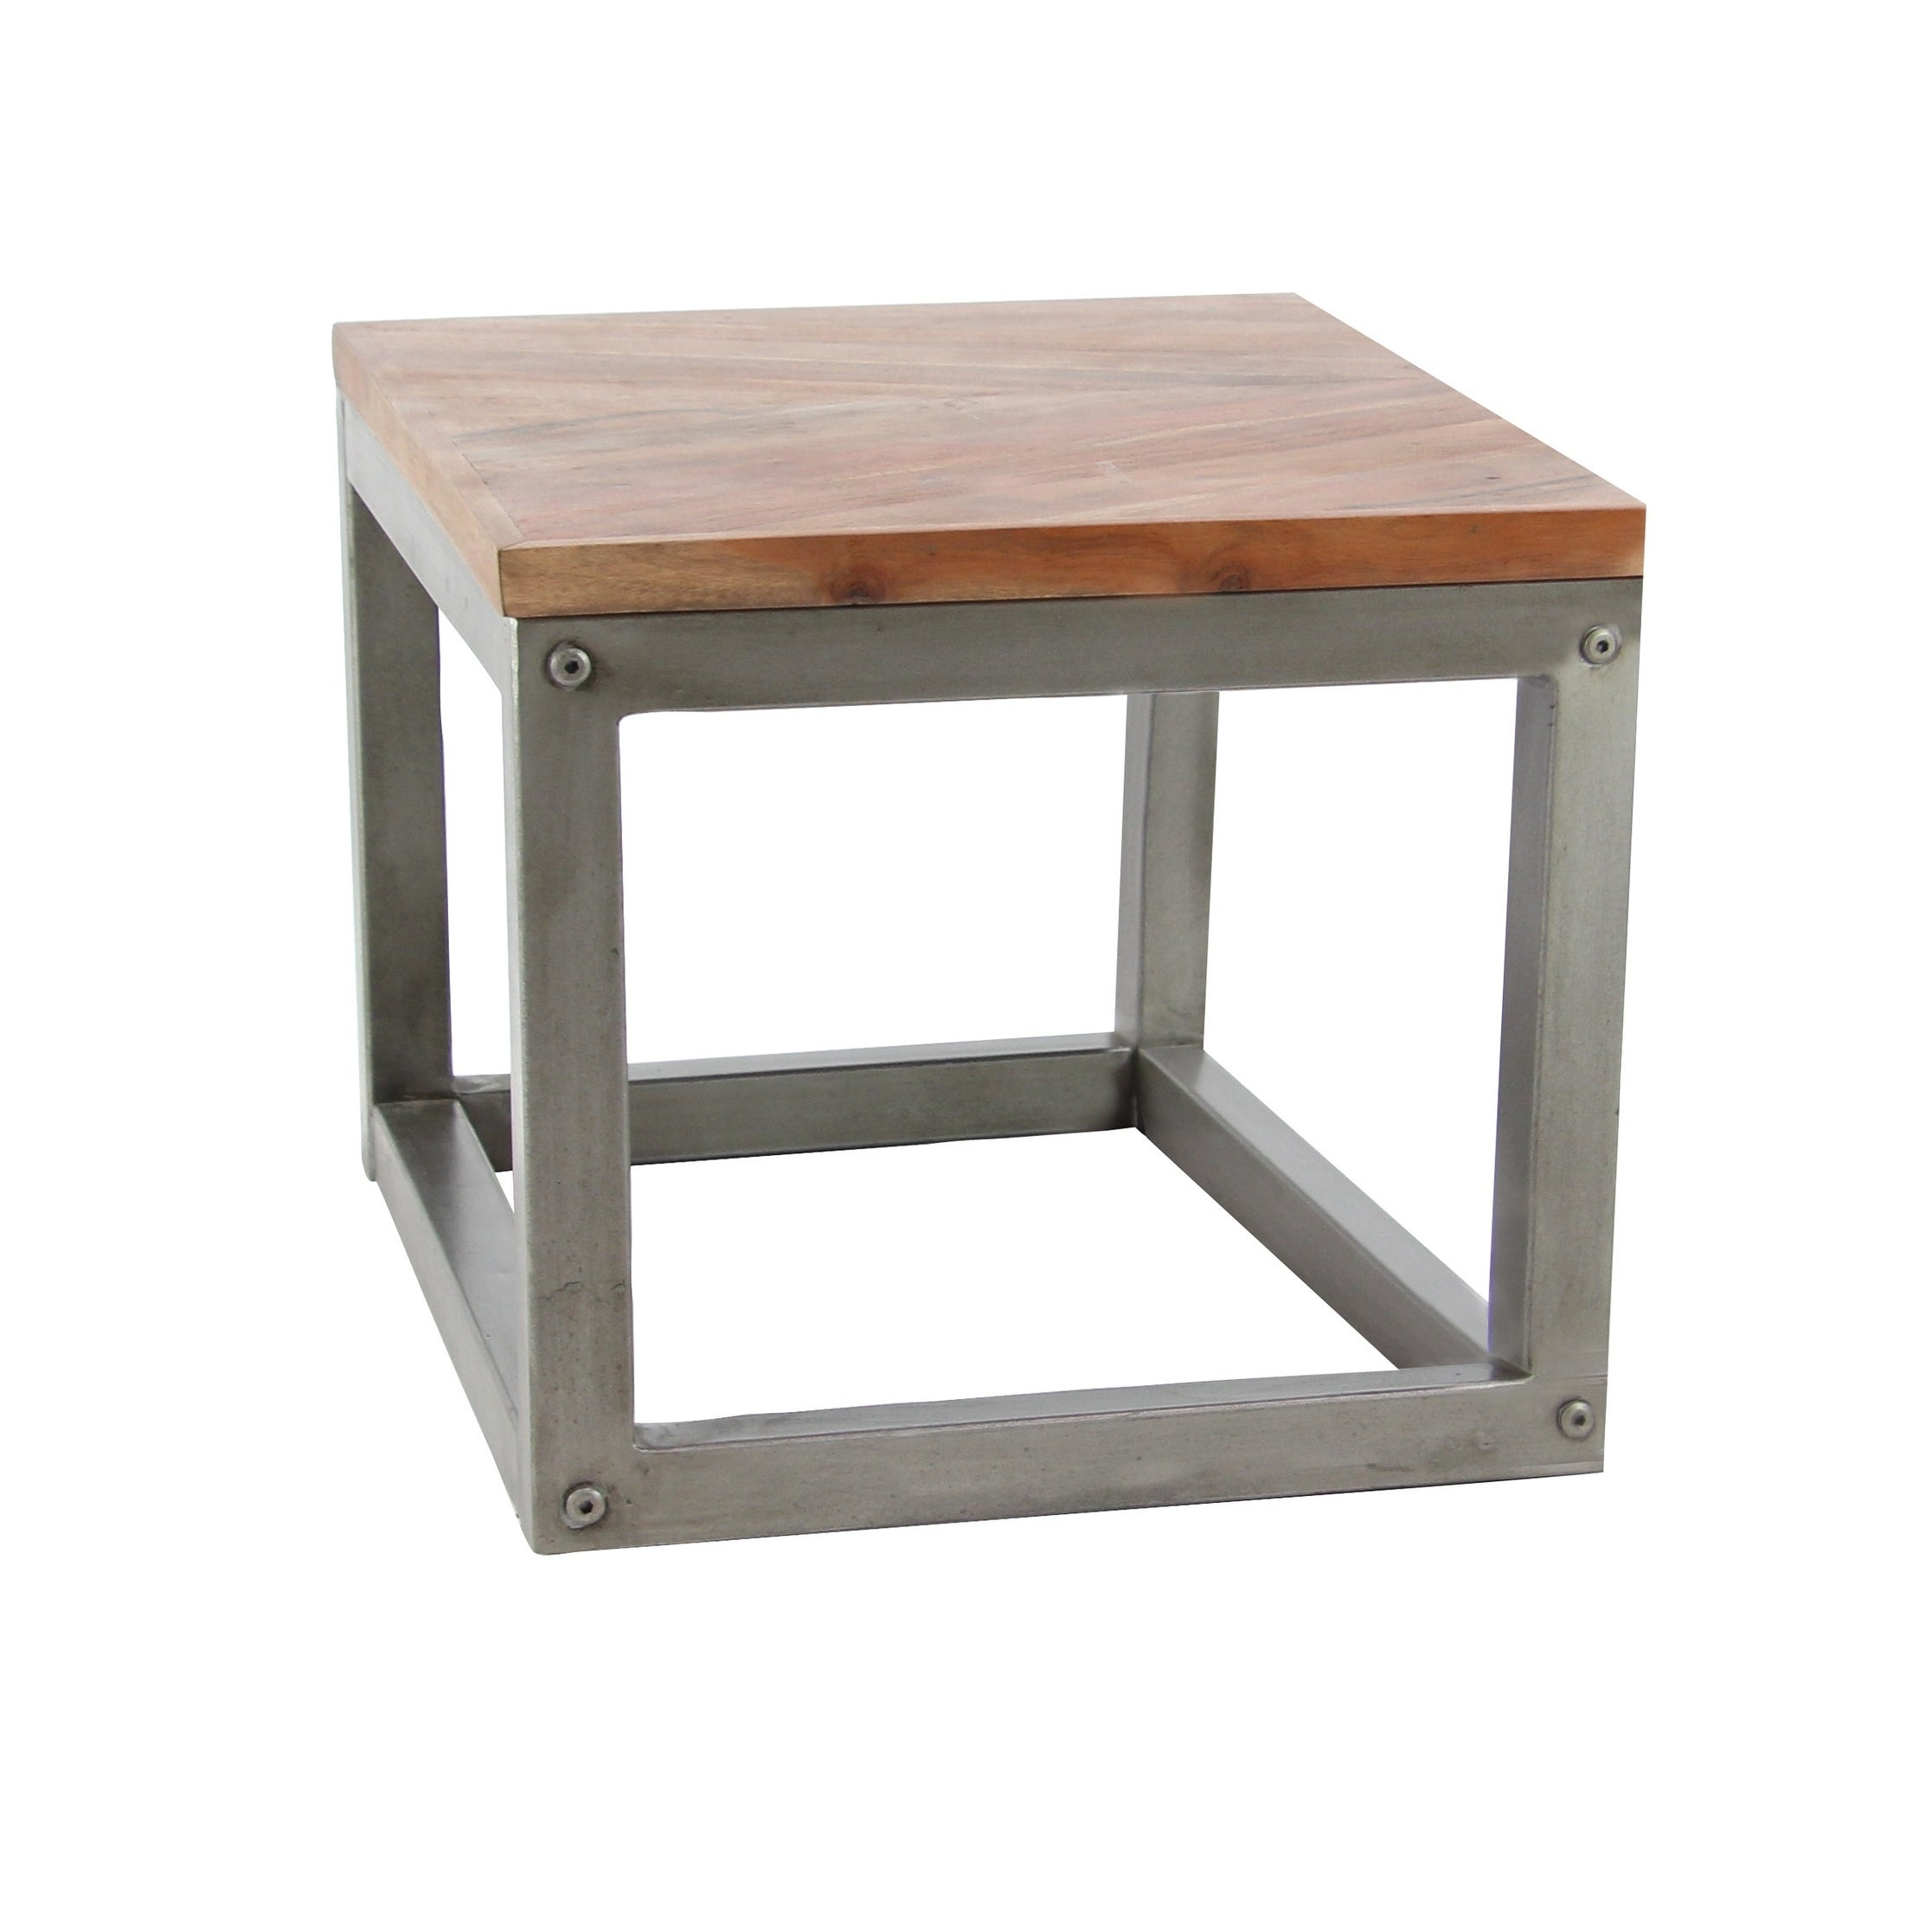 Shop Modern 26 x 24 Inch Square Side Table - Overstock - 20445481